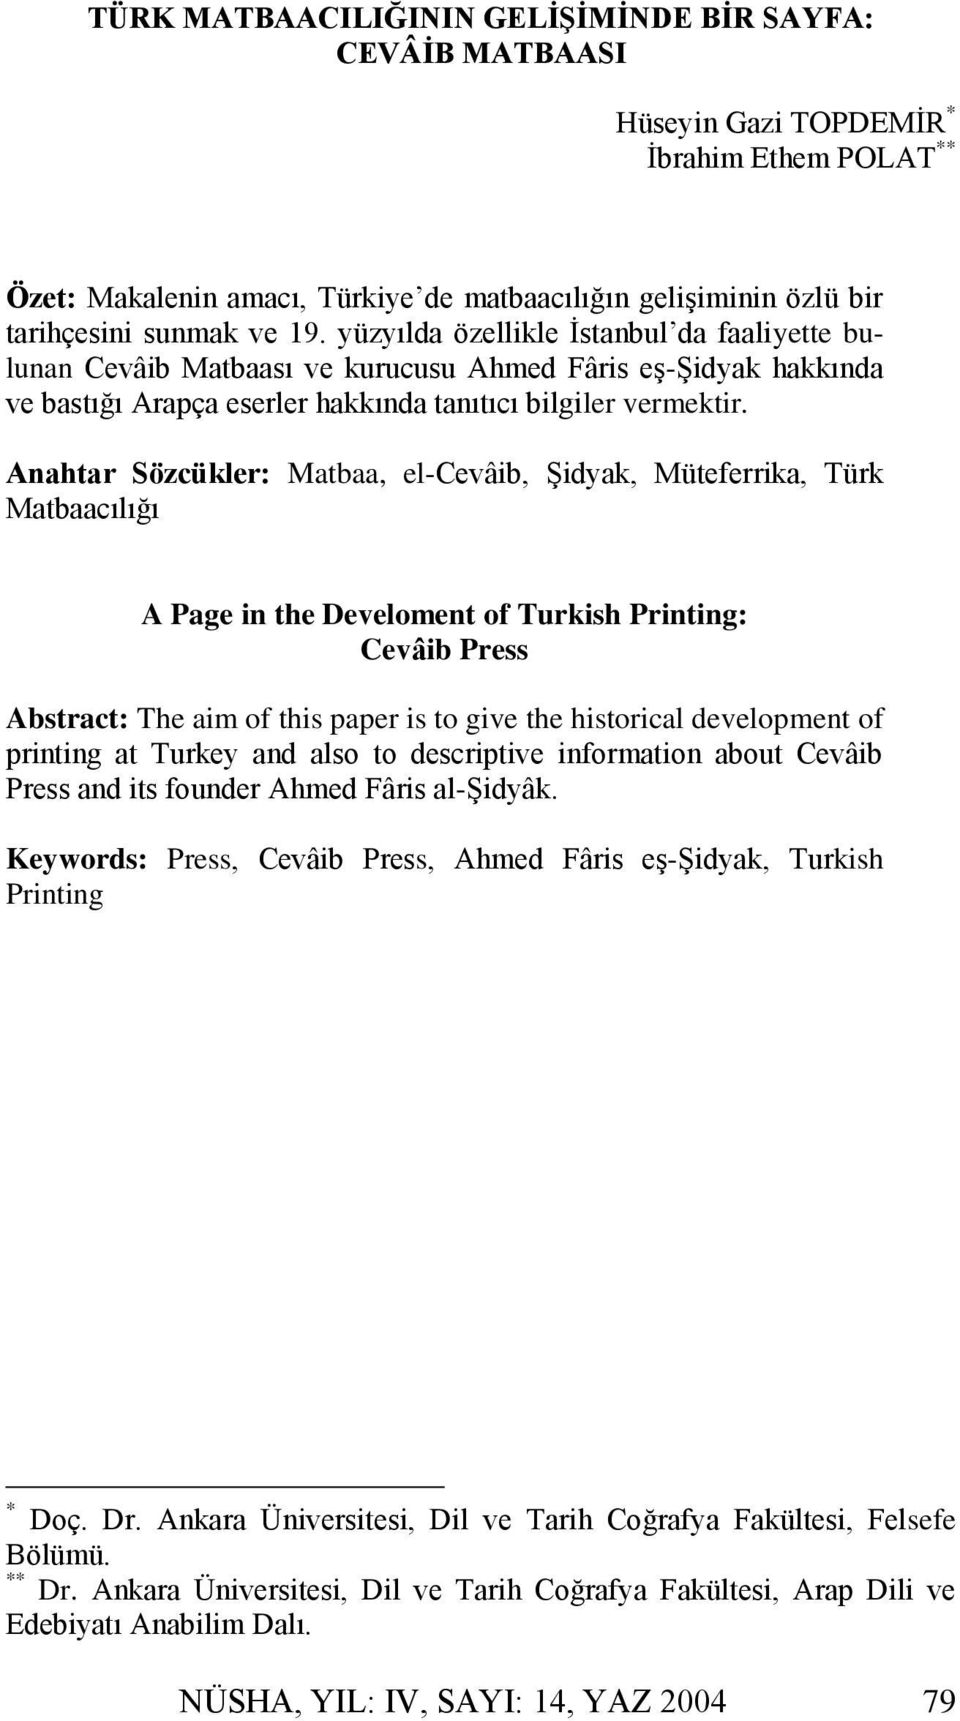 Anahtar Sözcükler: Matbaa, el-cevâib, Şidyak, Müteferrika, Türk Matbaacılığı A Page in the Develoment of Turkish Printing: Cevâib Press Abstract: The aim of this paper is to give the historical